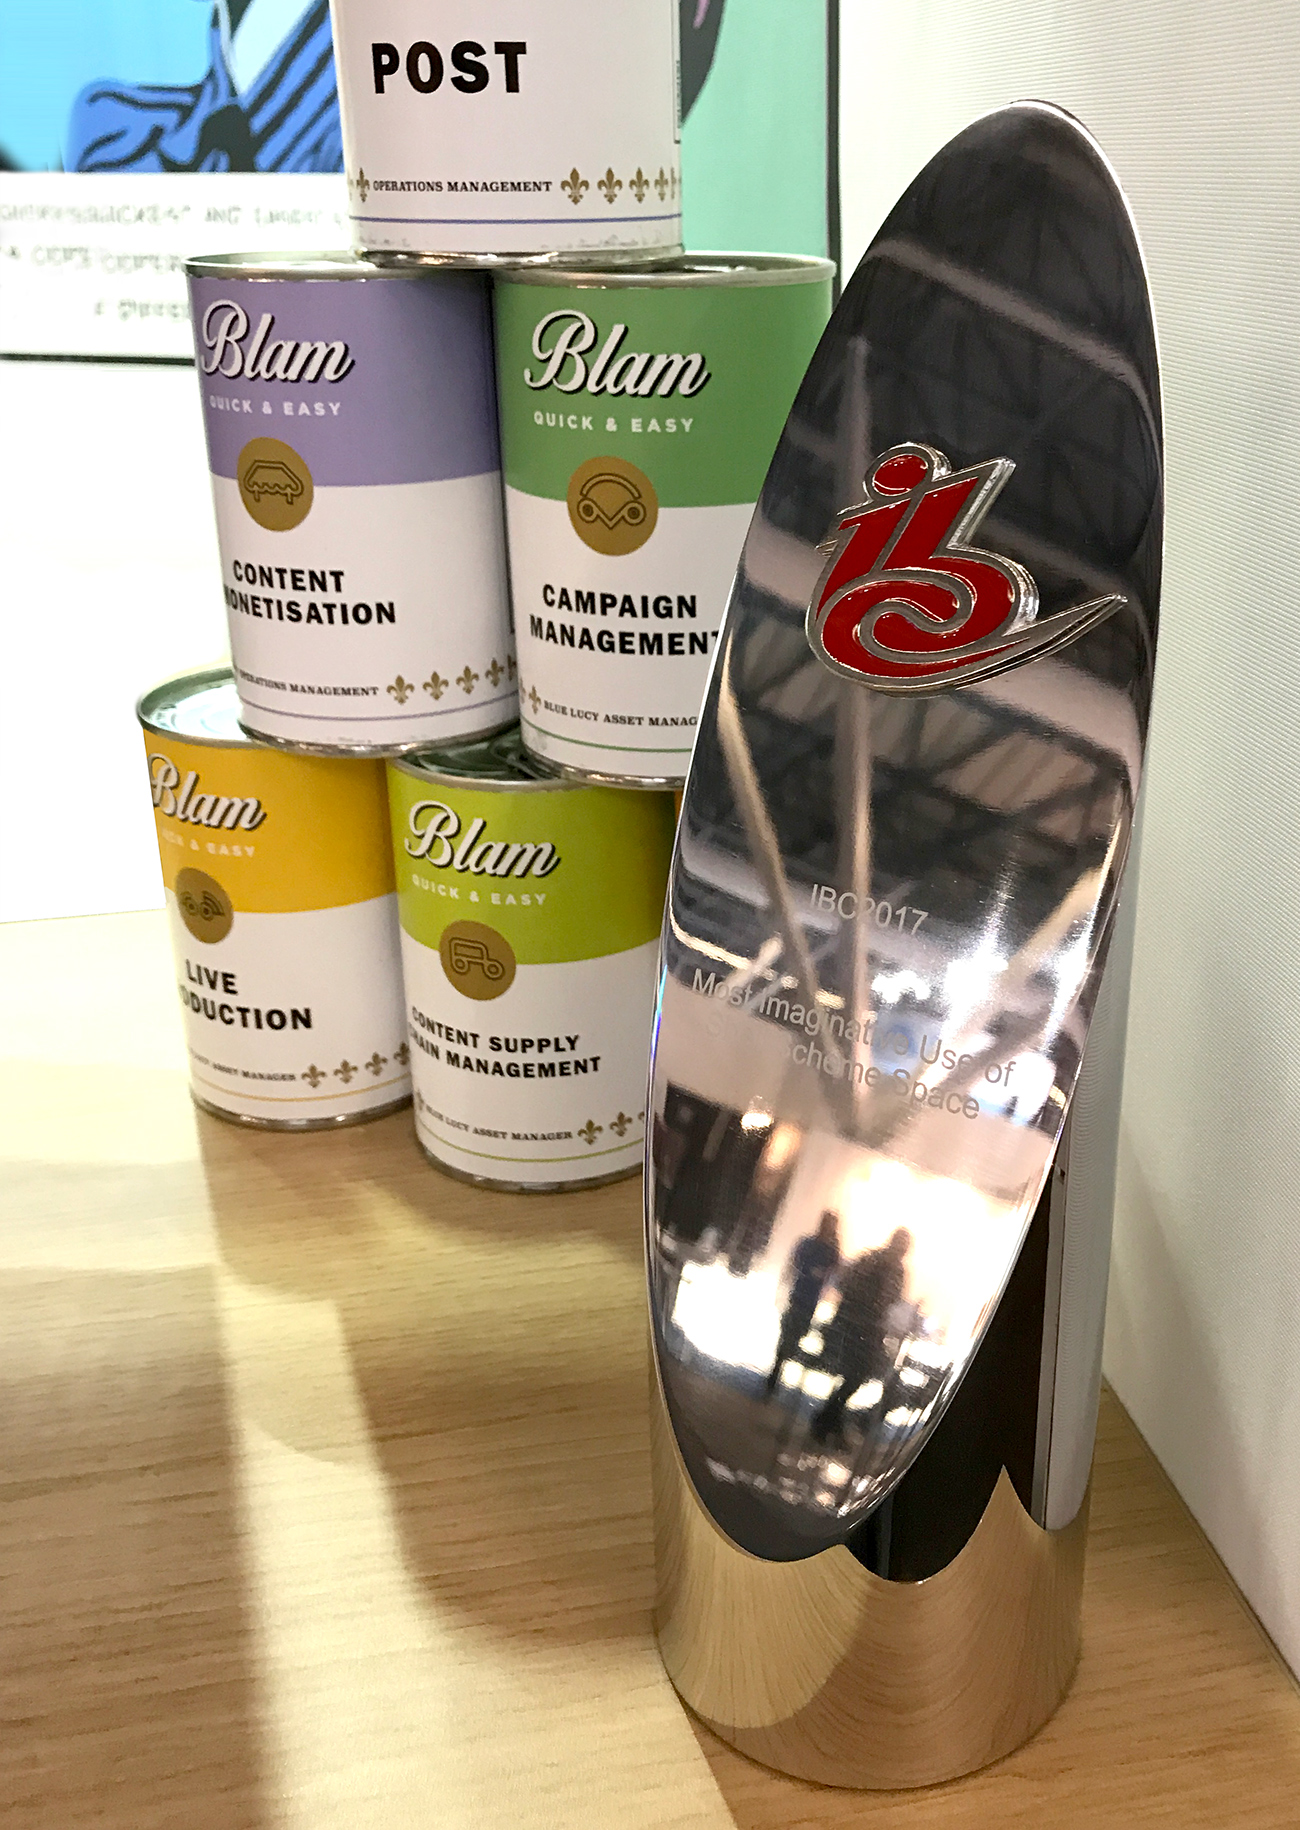 BLAM Cans with IBC Award